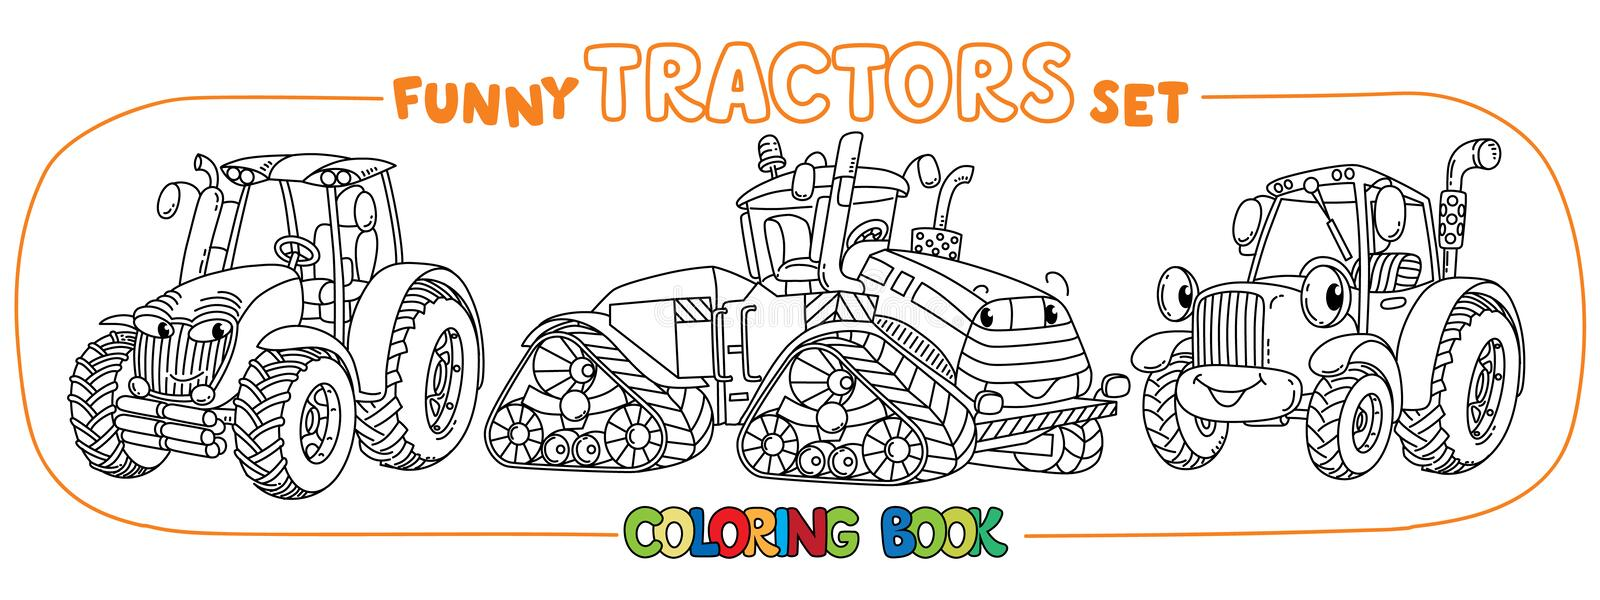 Funny small tractor set with eyes. Coloring book royalty free illustration